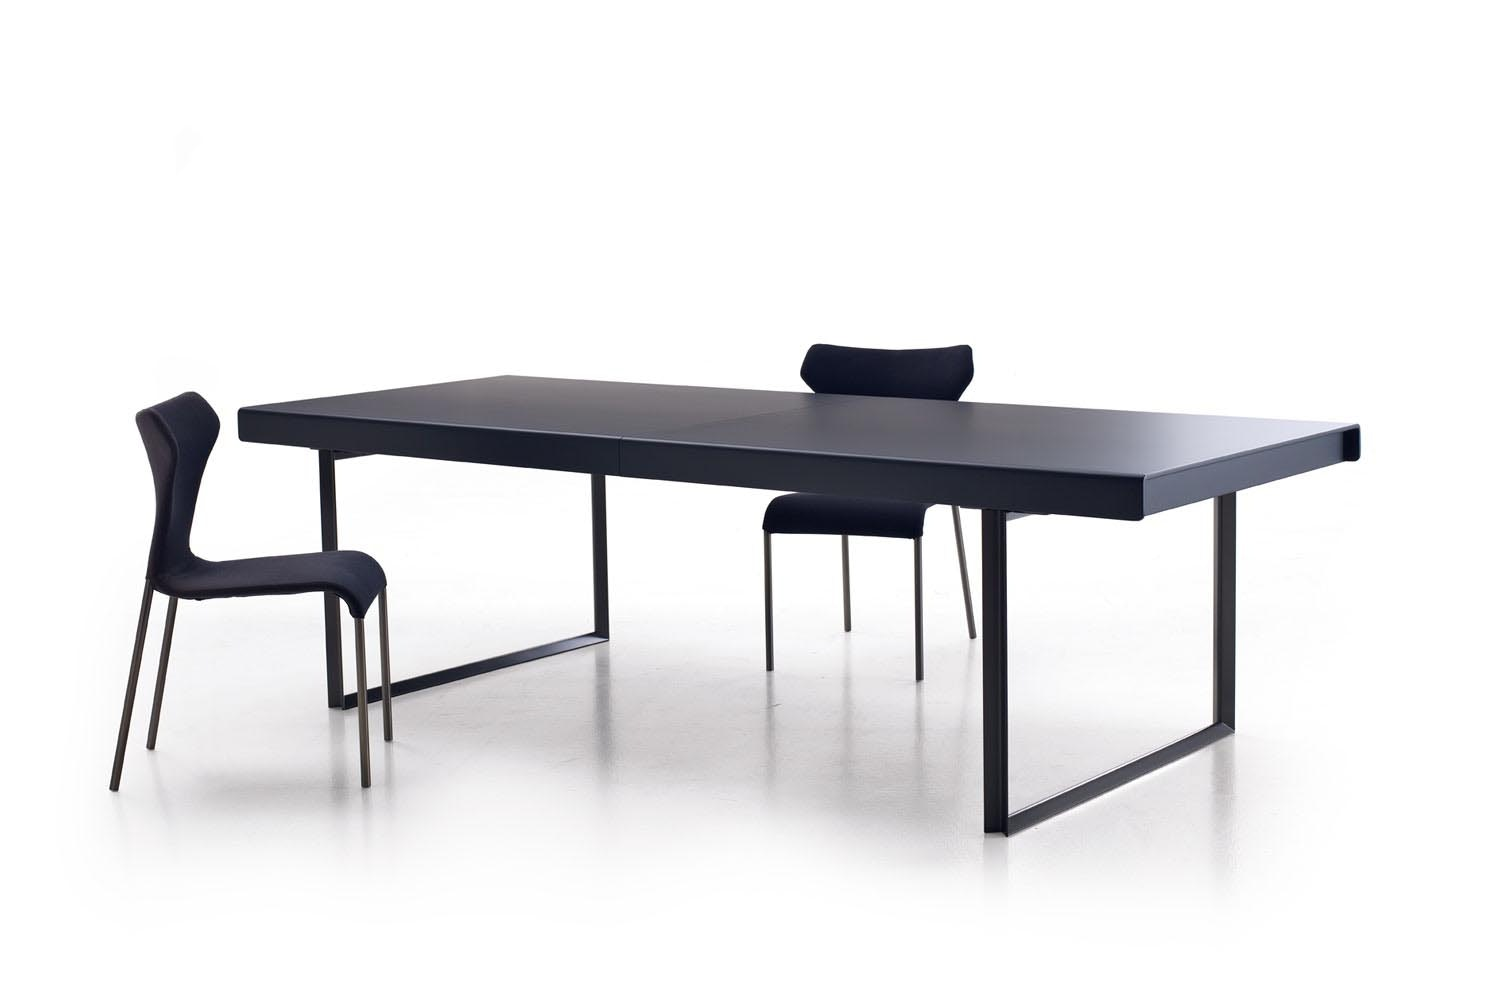 Athos '12 Table by Paolo Piva for B&B Italia